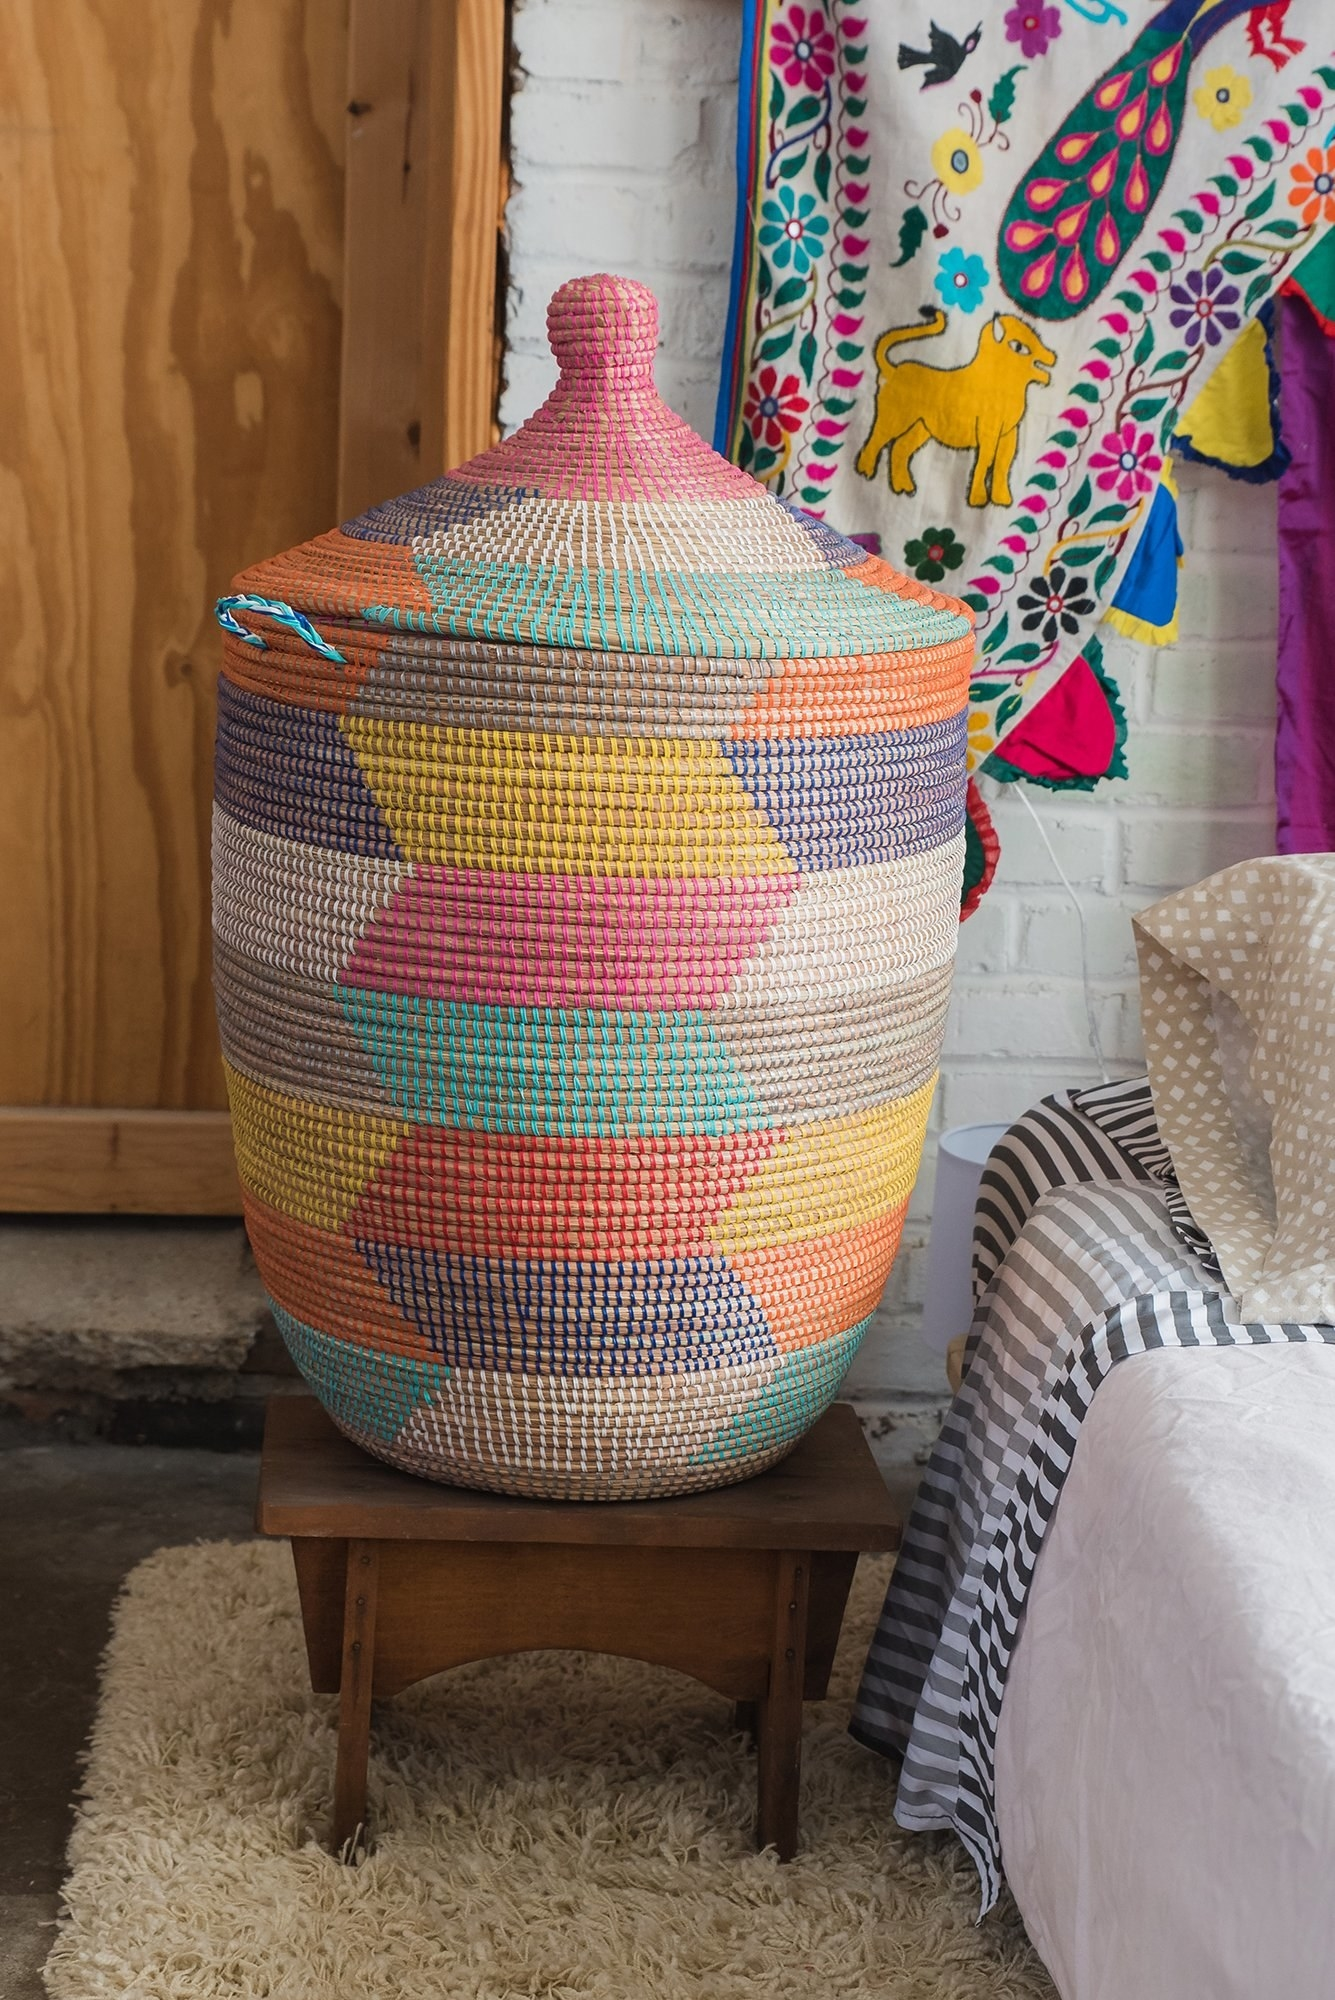 A large woven basket with a lid and handles on the side with patches of different rainbow colors all over